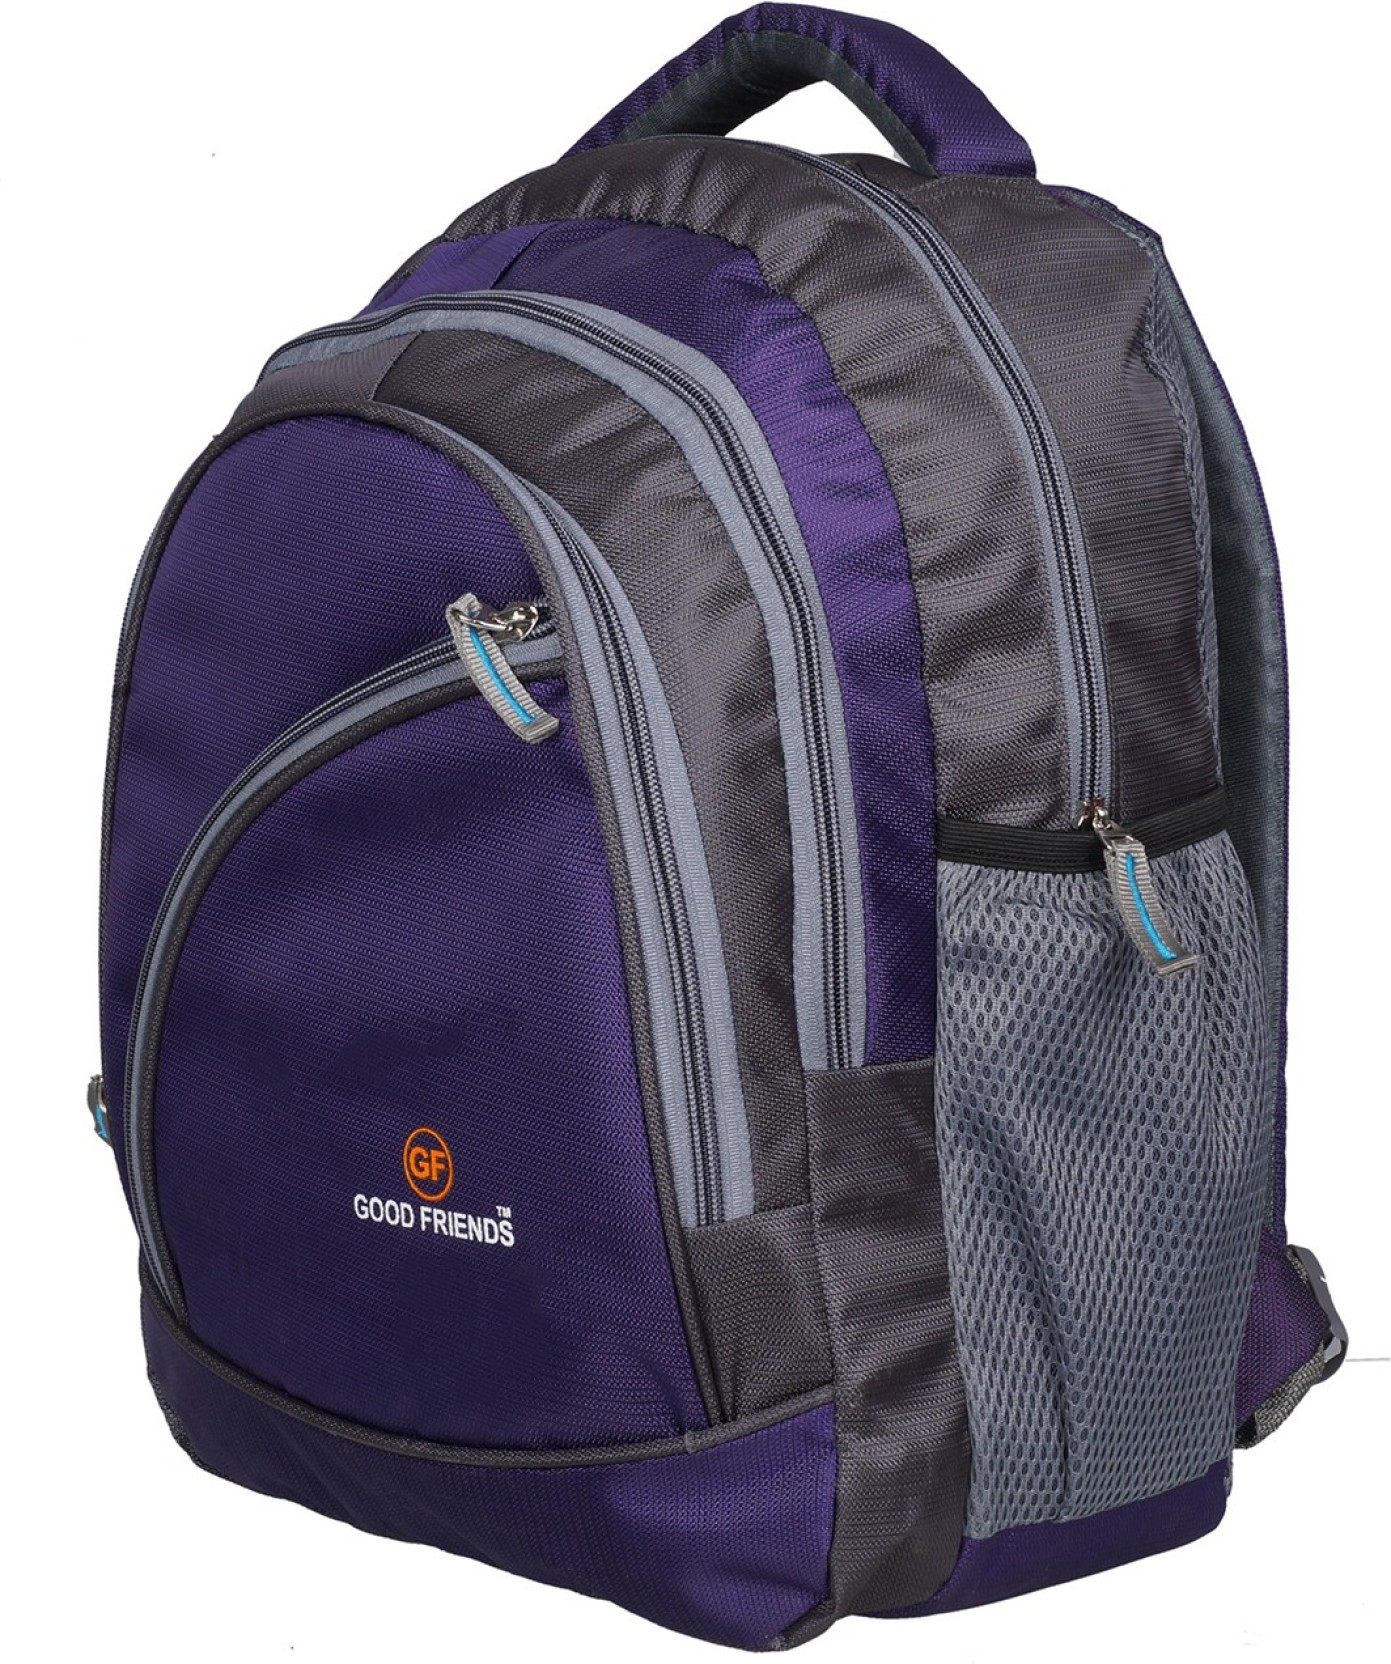 Good Friends 3 To 5 Class High Quality Zip Backpack Waterproof School Bag  (Purple 356f616464509